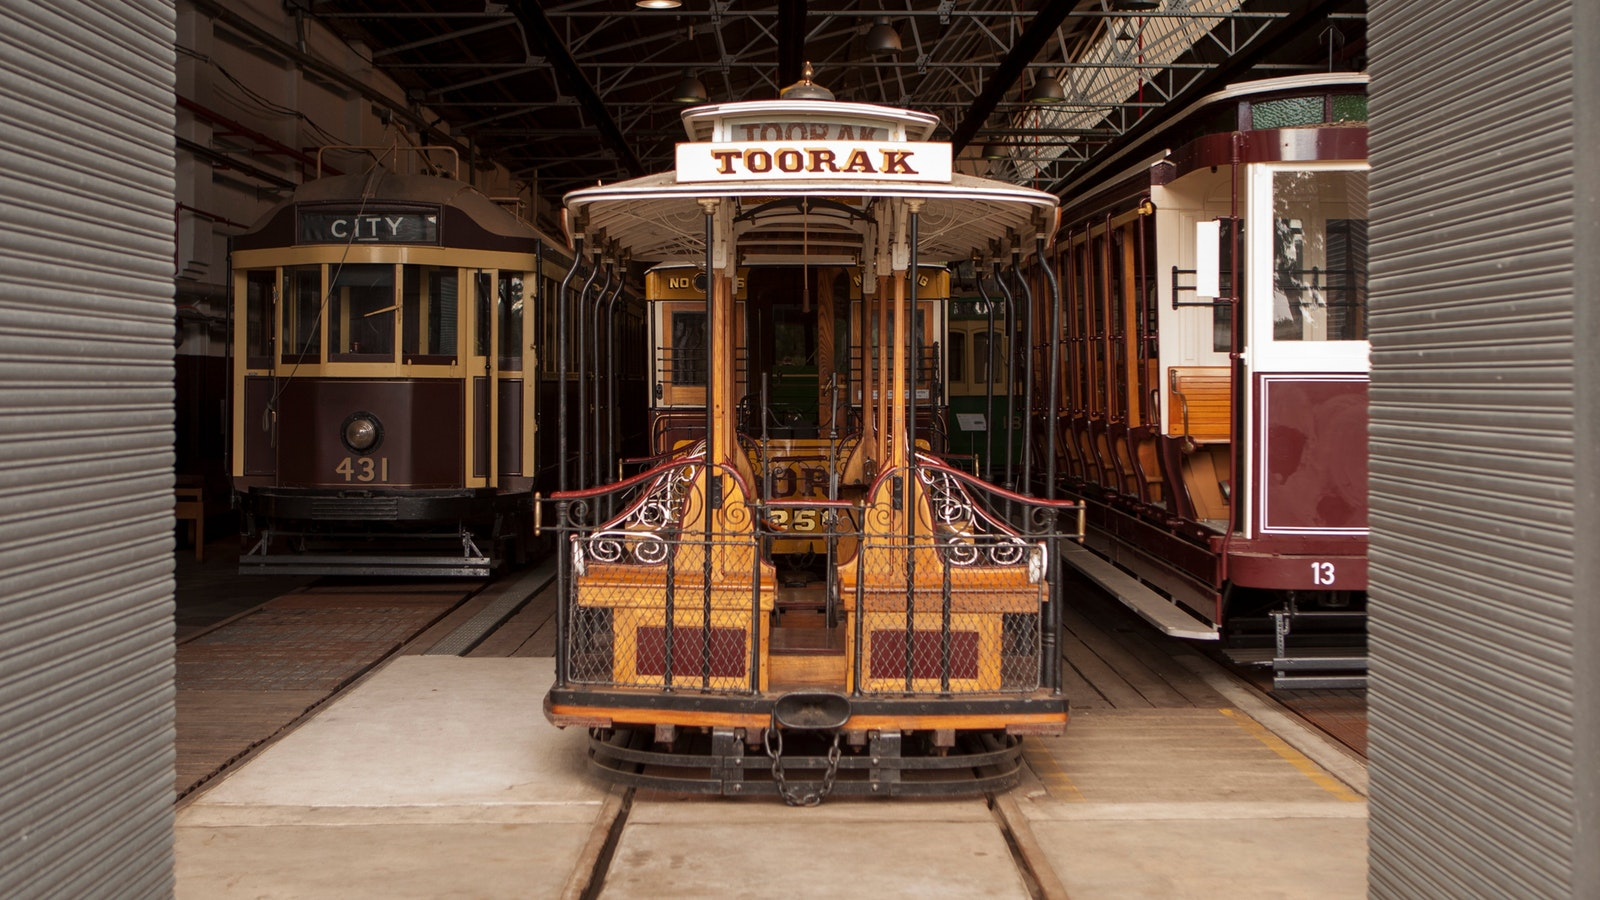 View an 1885-vintage Melbourne cable tram